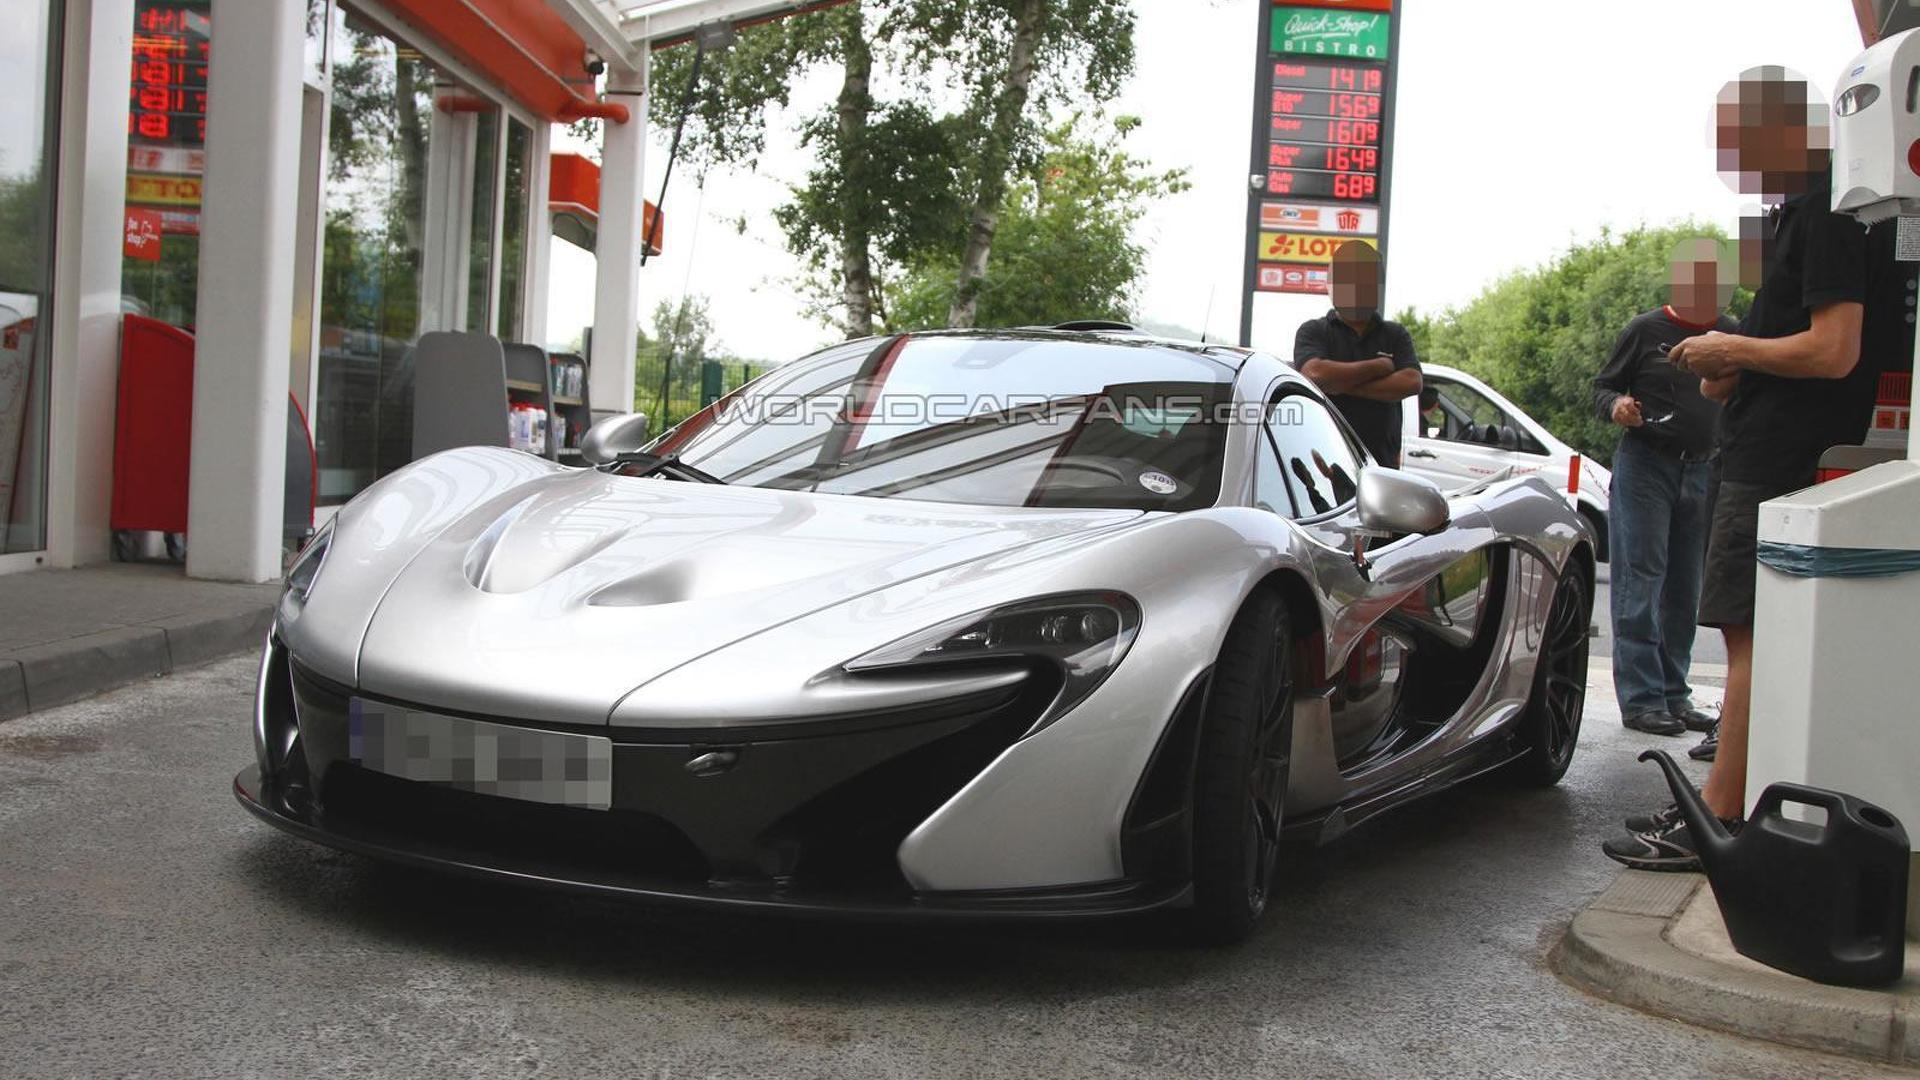 2014 McLaren P1 'XP2R' limited edition spied for the first time